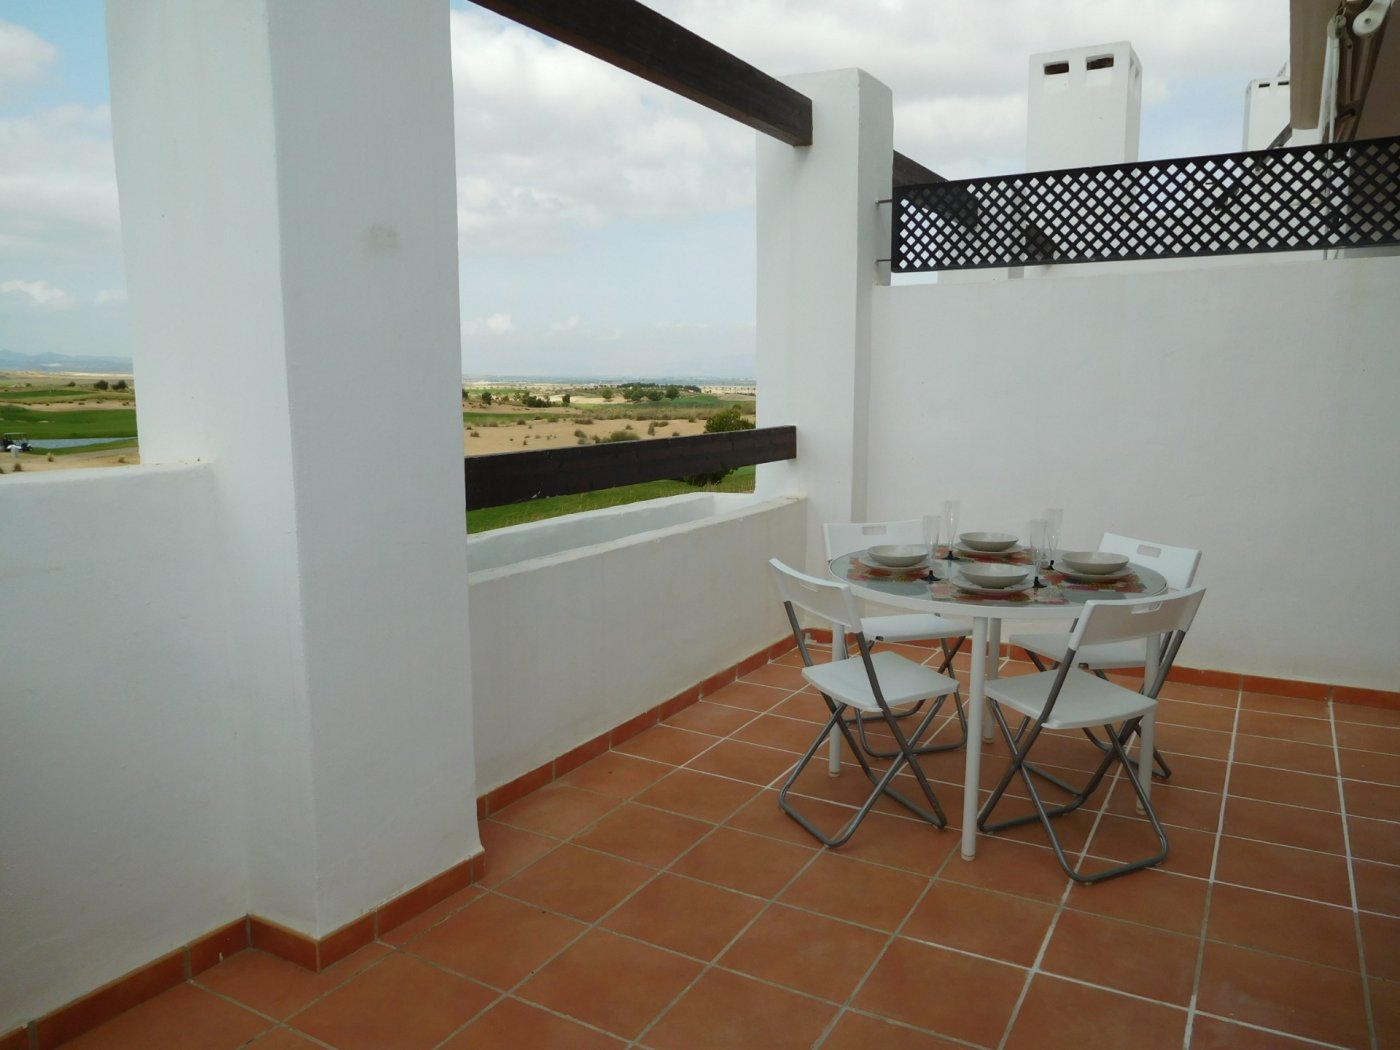 Gallery Image 12 of Apartment For rent in Condado De Alhama, Alhama De Murcia With Pool